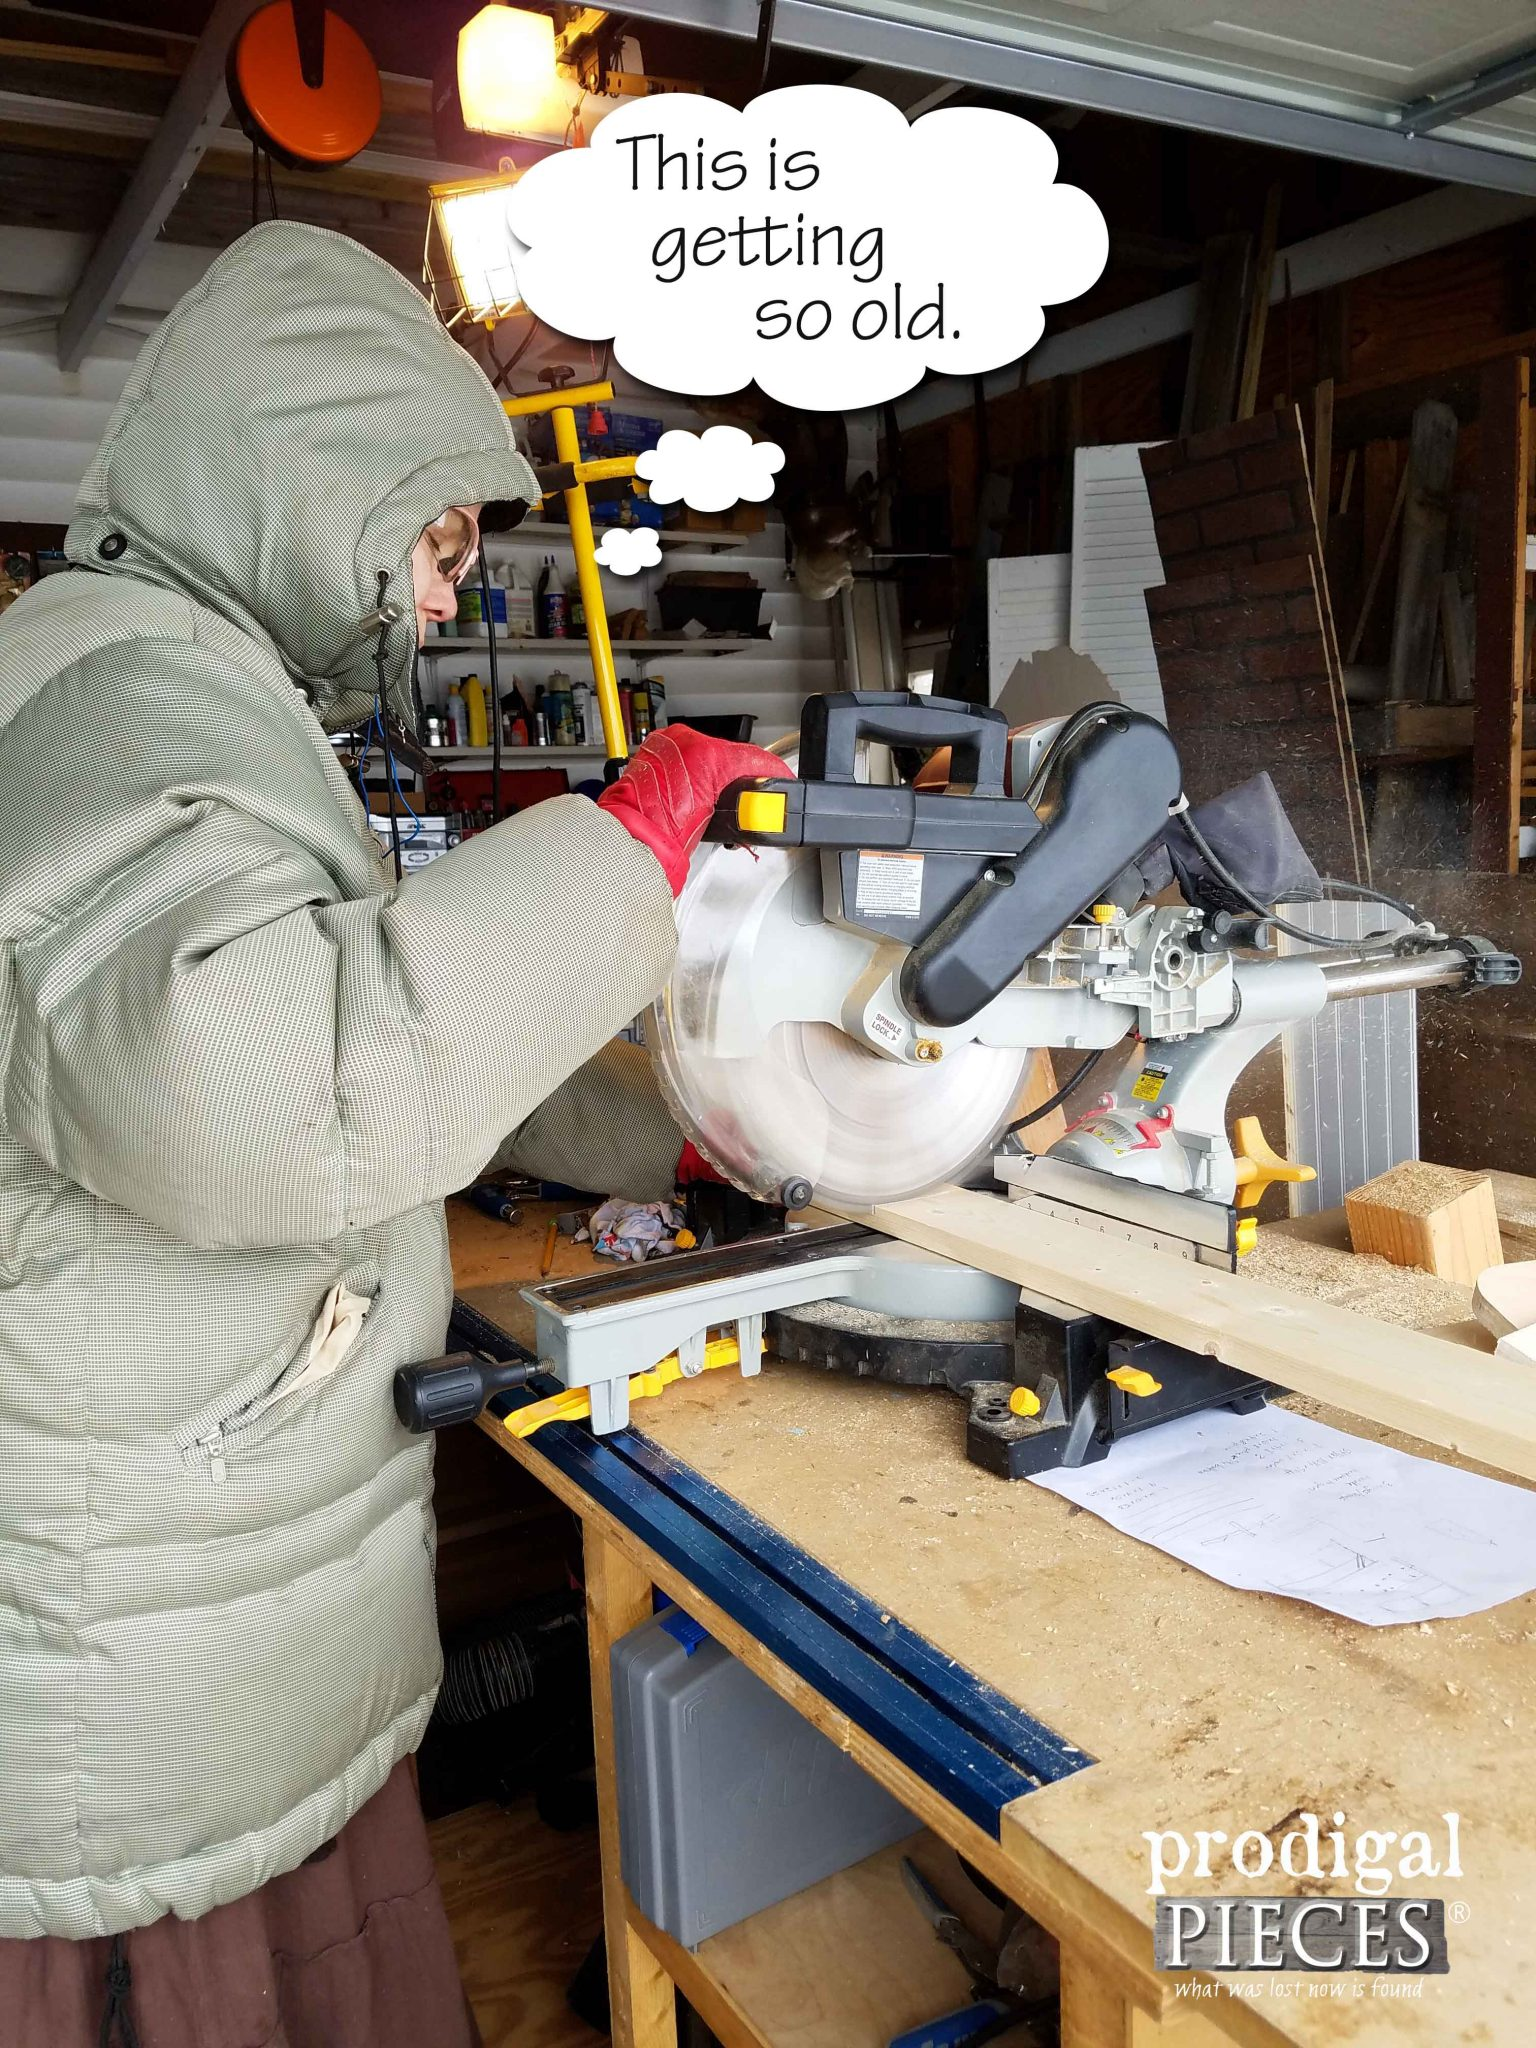 Using Miter Saw Out in Freezing Cold | Prodigal Pieces | prodigalpieces.com